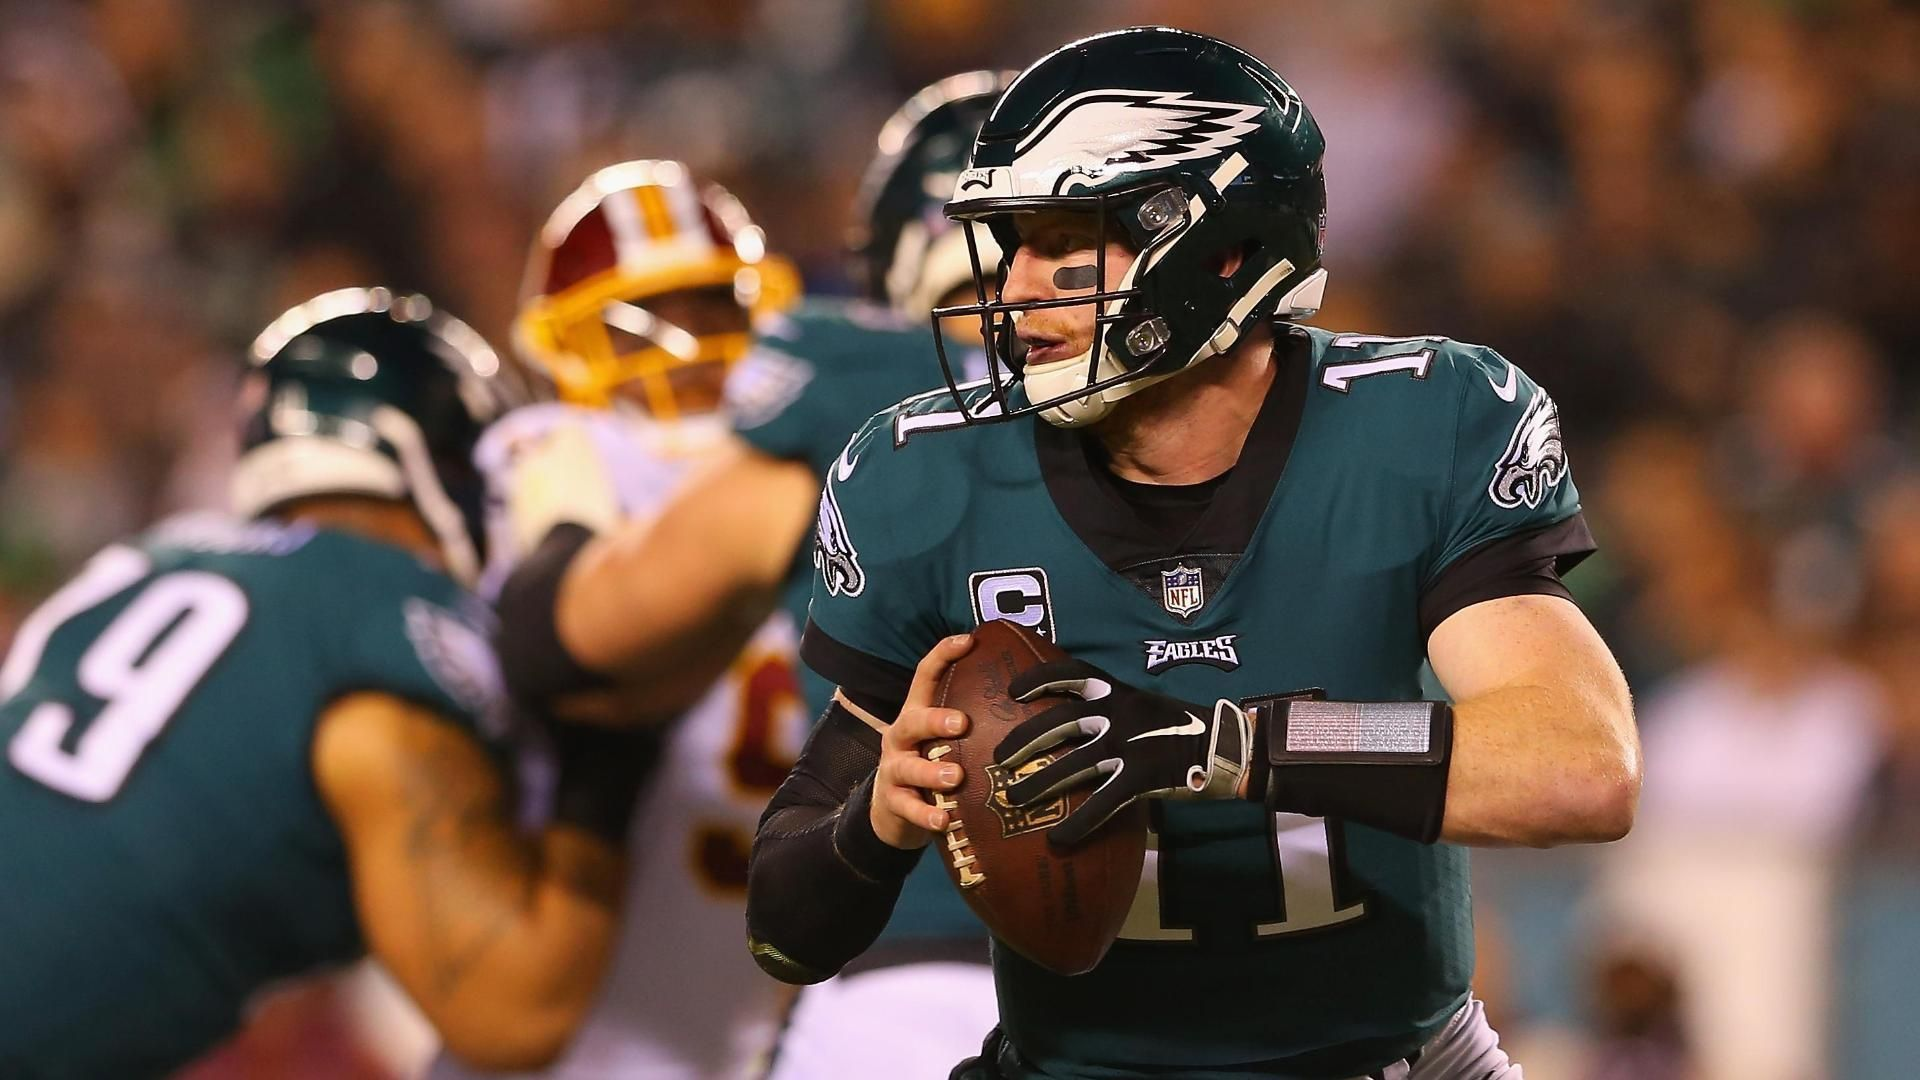 Wentz throws for 306 yards, 2 TDs in Eagles' MNF win